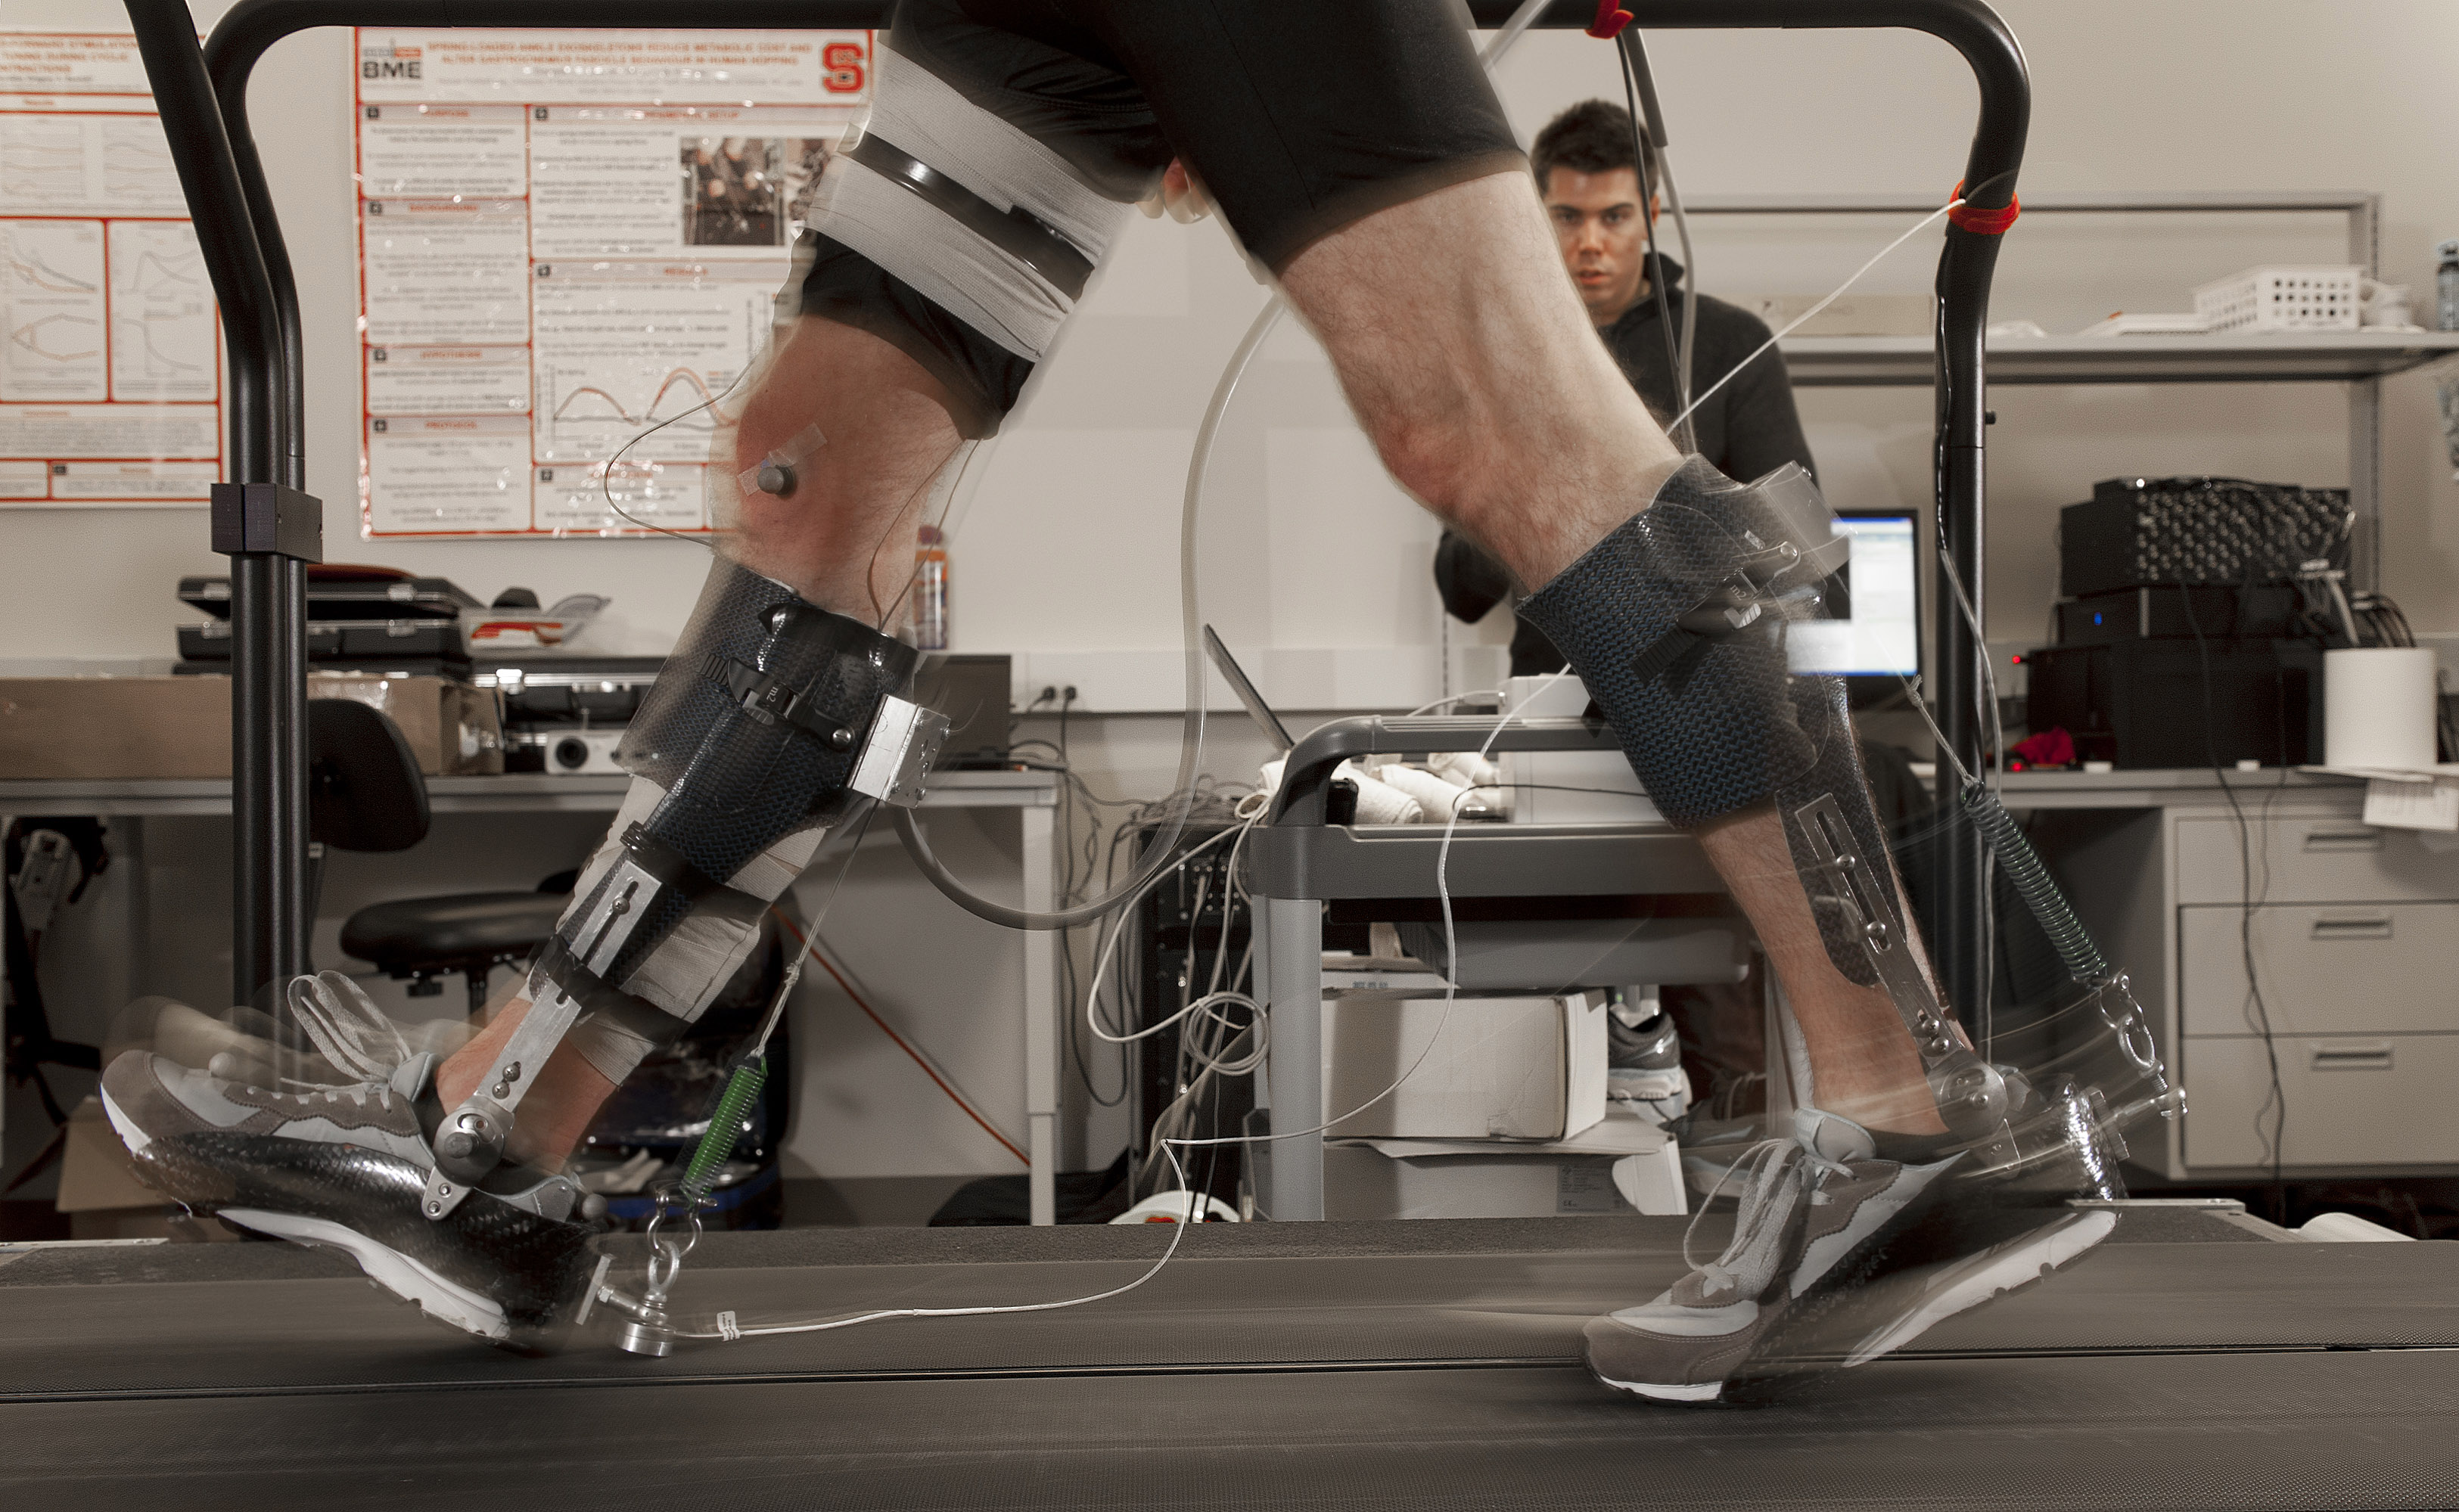 Students work in the GAIT lab in the Rehabilition Engineering department on Centennial Campus. Photo by Marc Hall